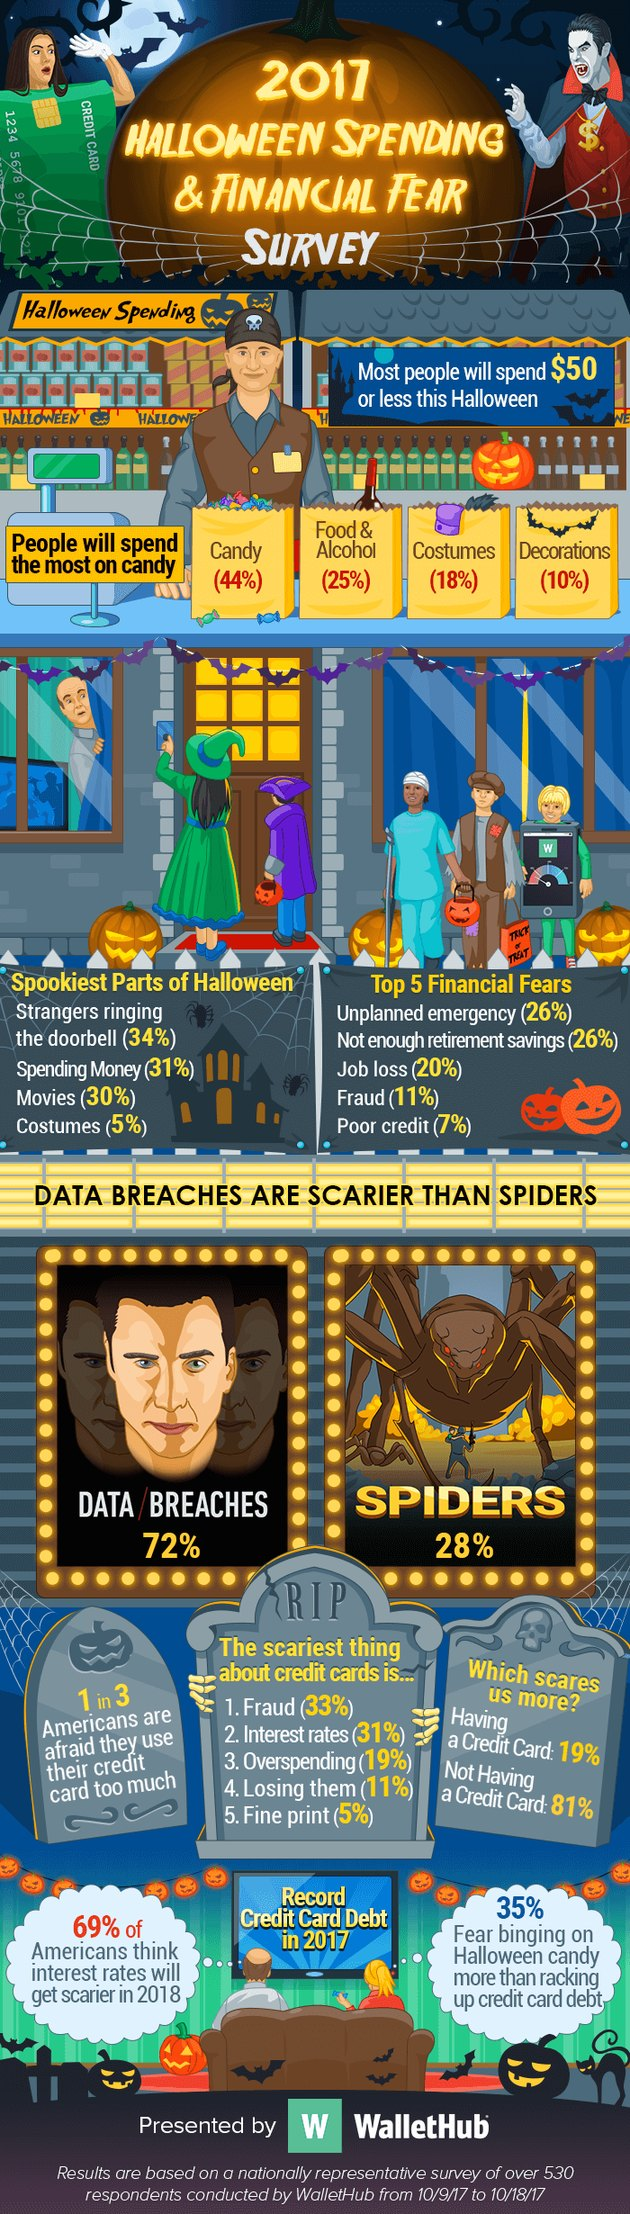 2017 Halloween Spending and Financial Fear Survey